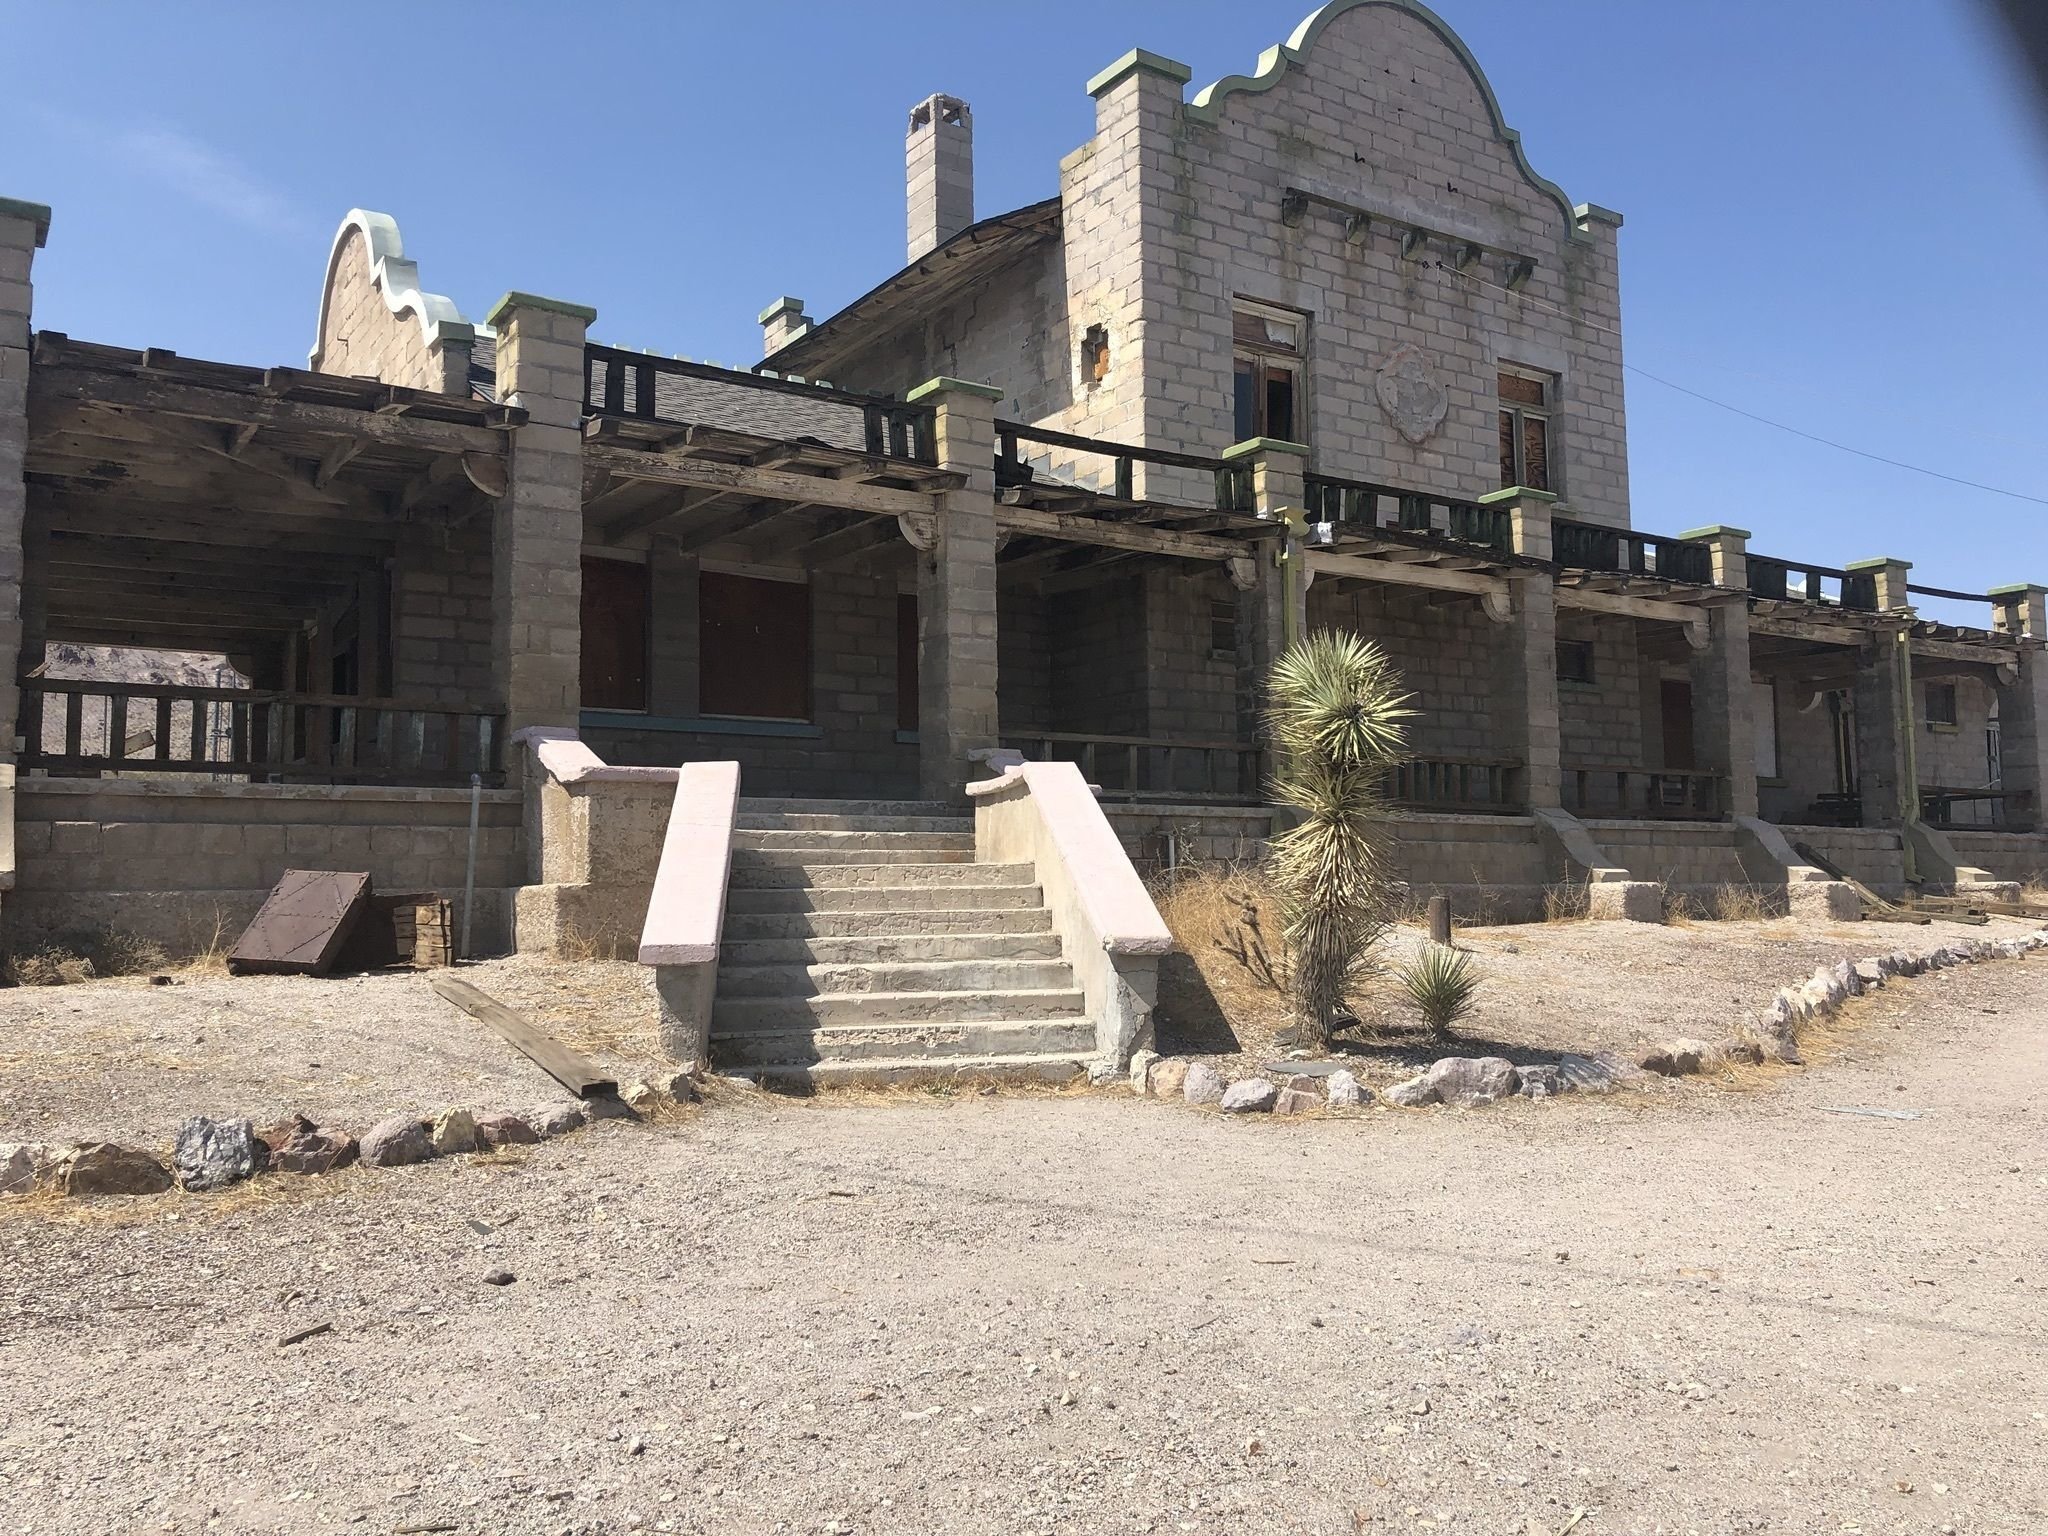 Rhyolite . . . A Ghost Town With A Story. - Desert Road ... |Rhyolite Ghost Town